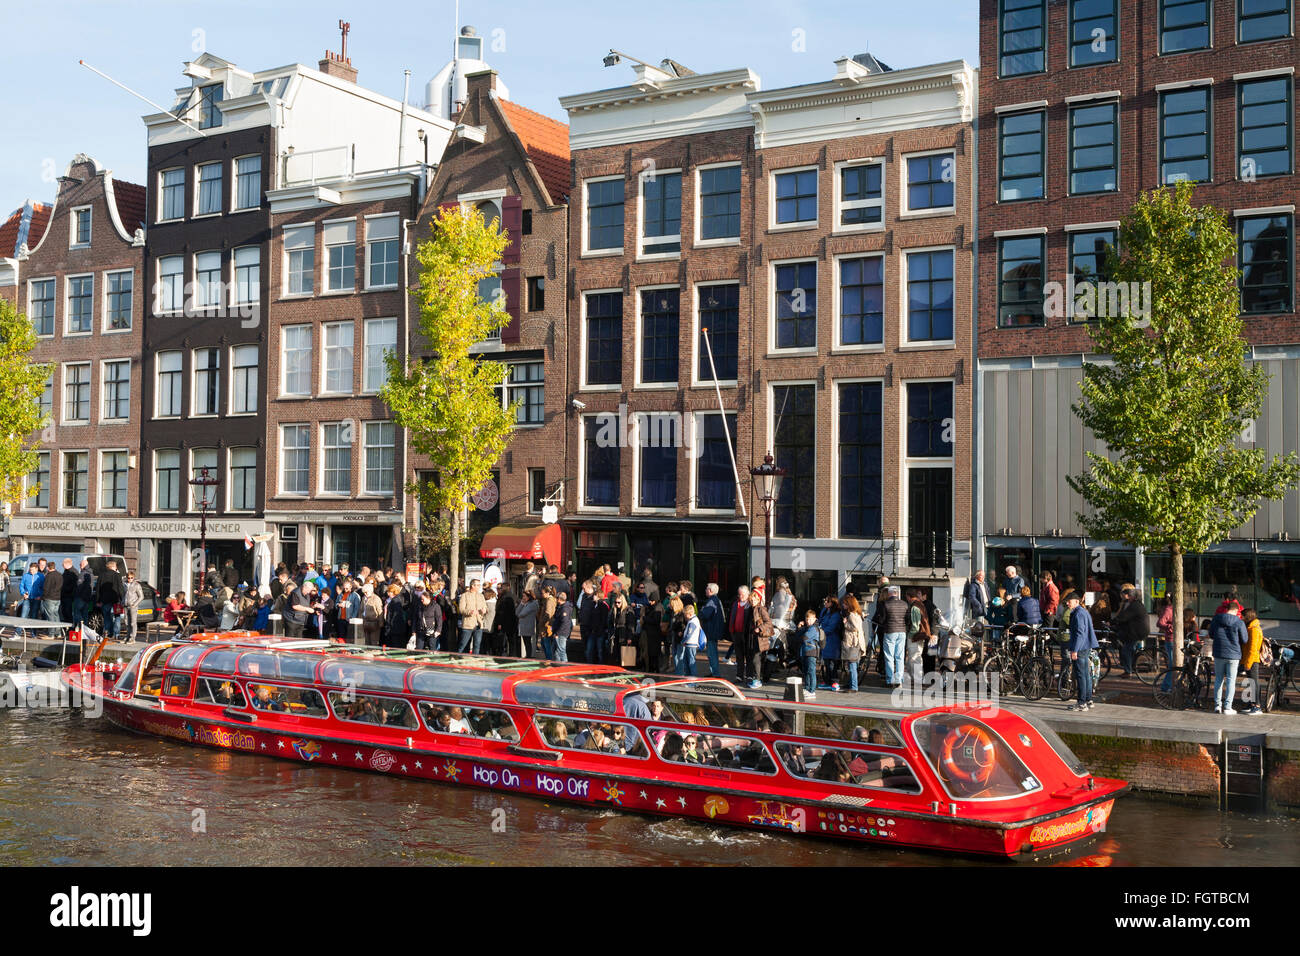 Tourist sight seeing boat with tourists / visitors in front of Anne Frank 's House / museum in Amsterdam Holland - Stock Image